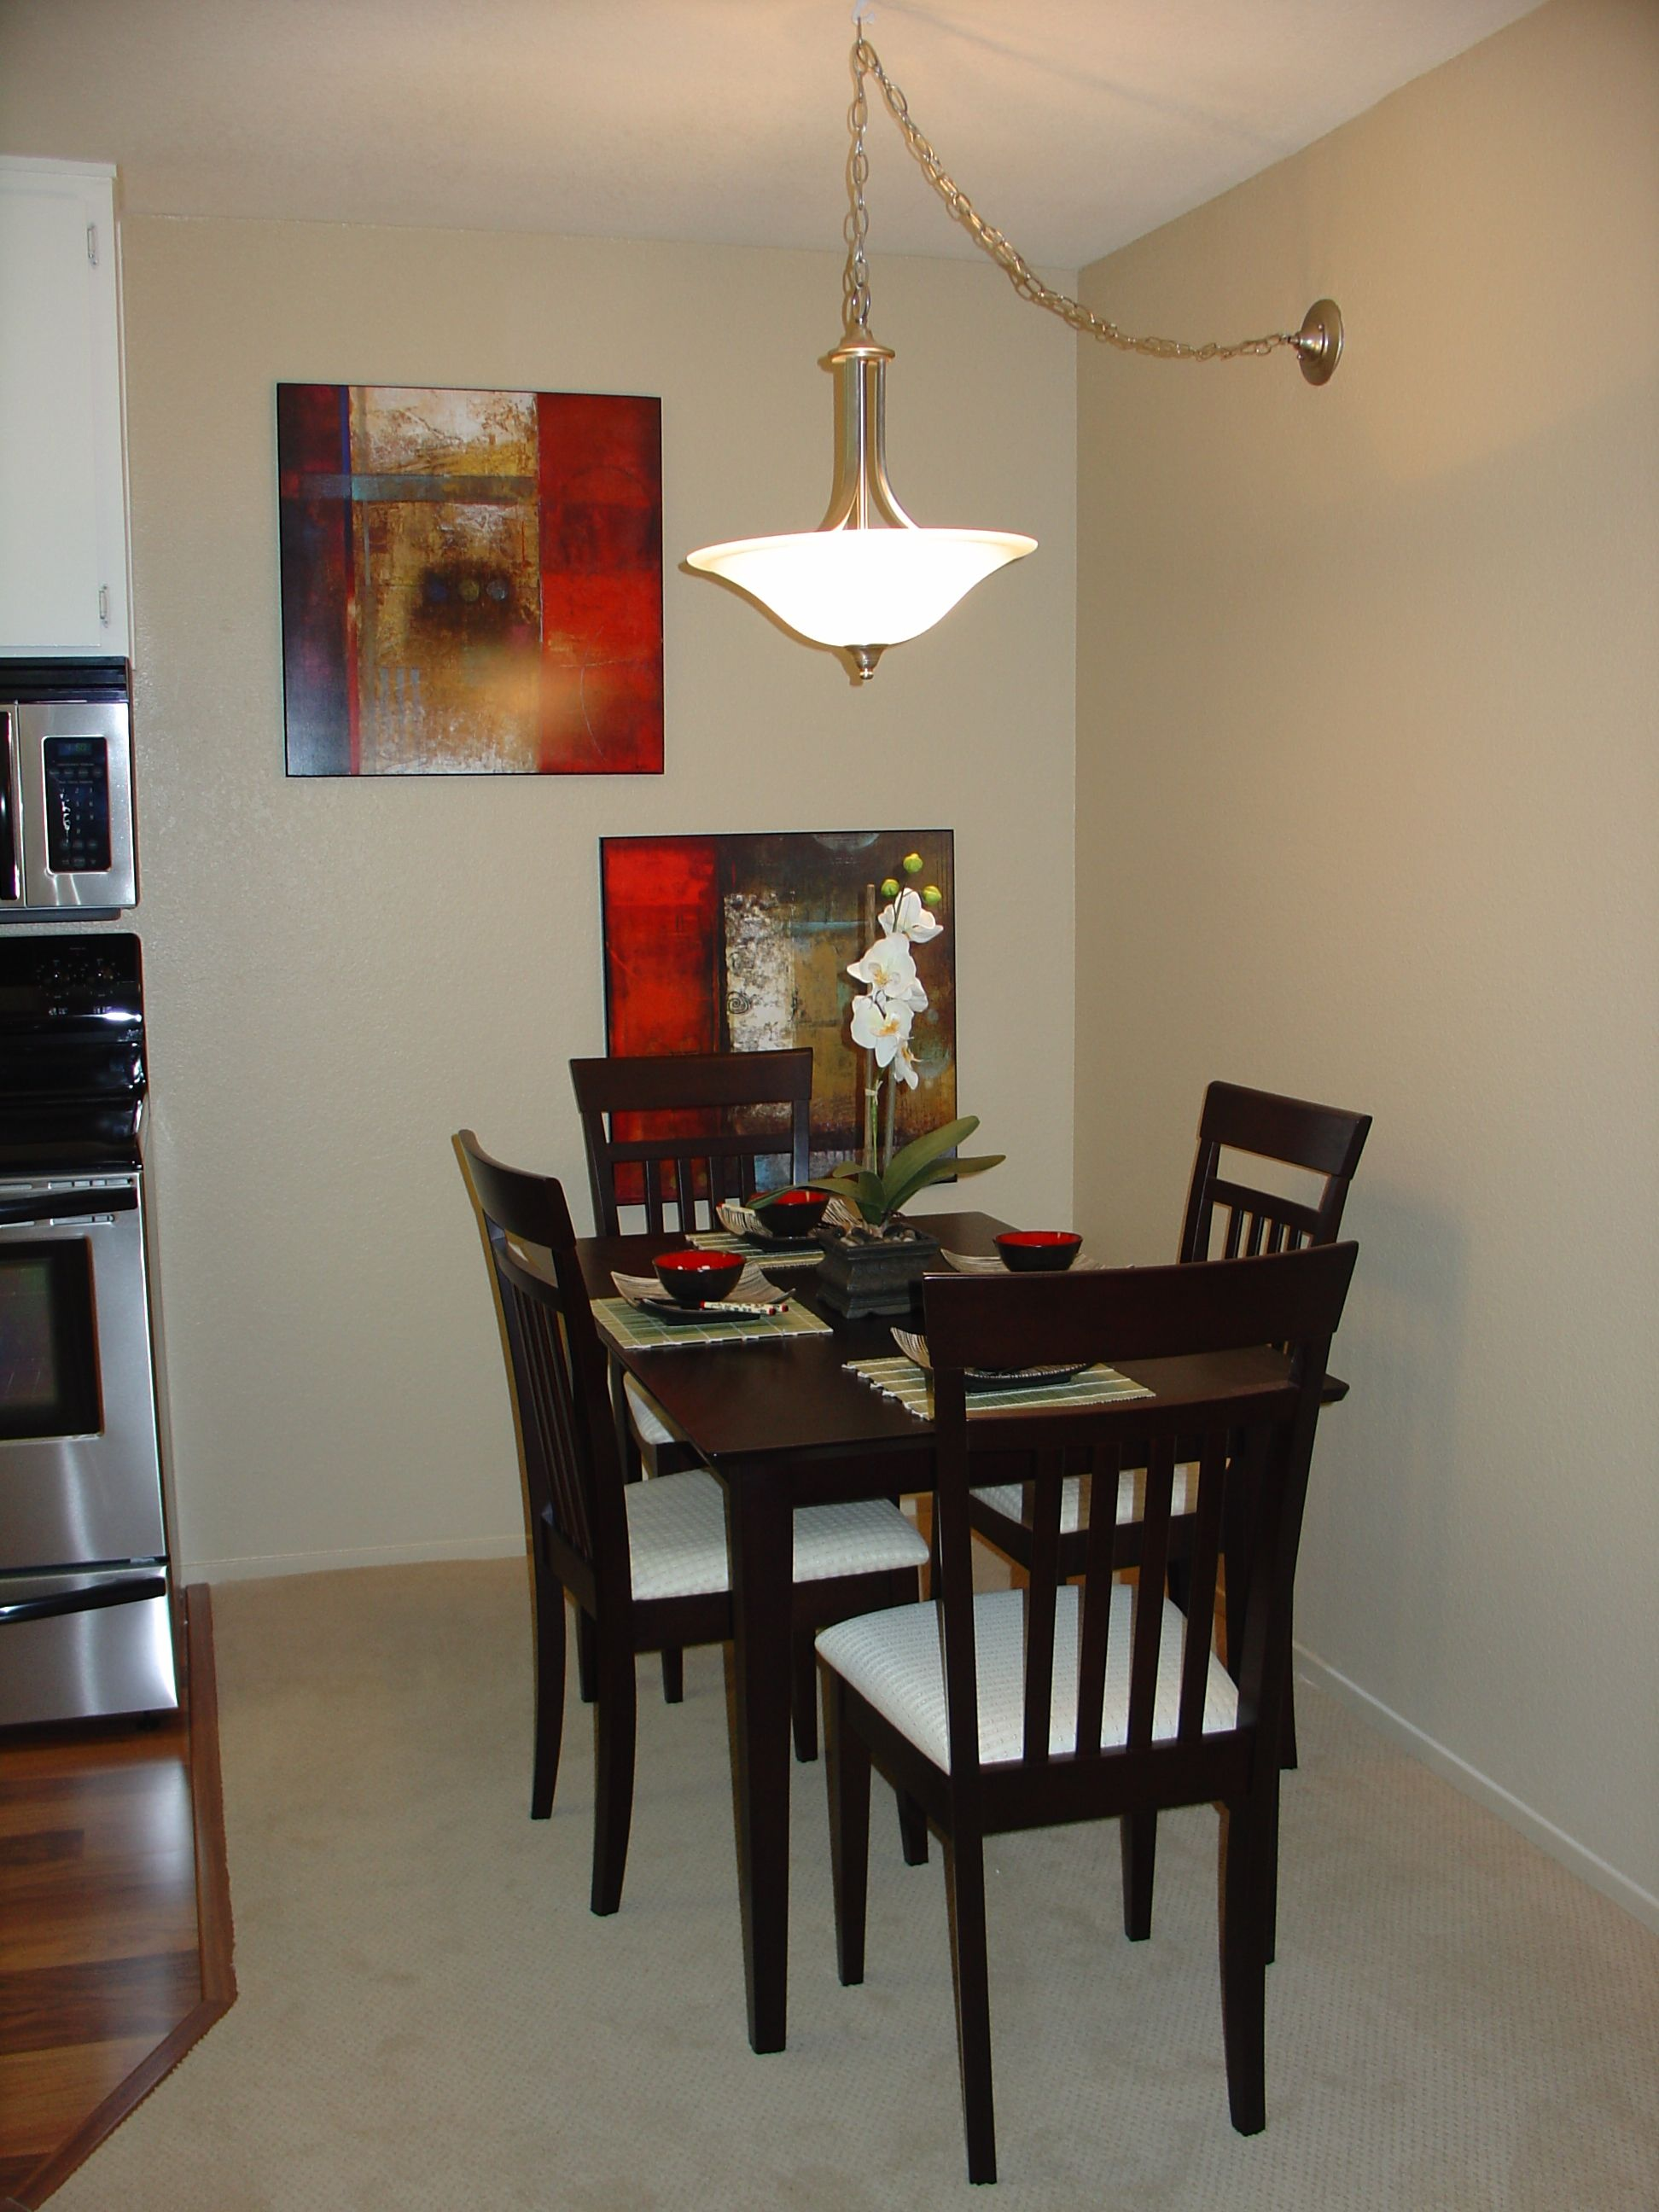 Small living room with dining table   Decor ideas   Pinterest ...